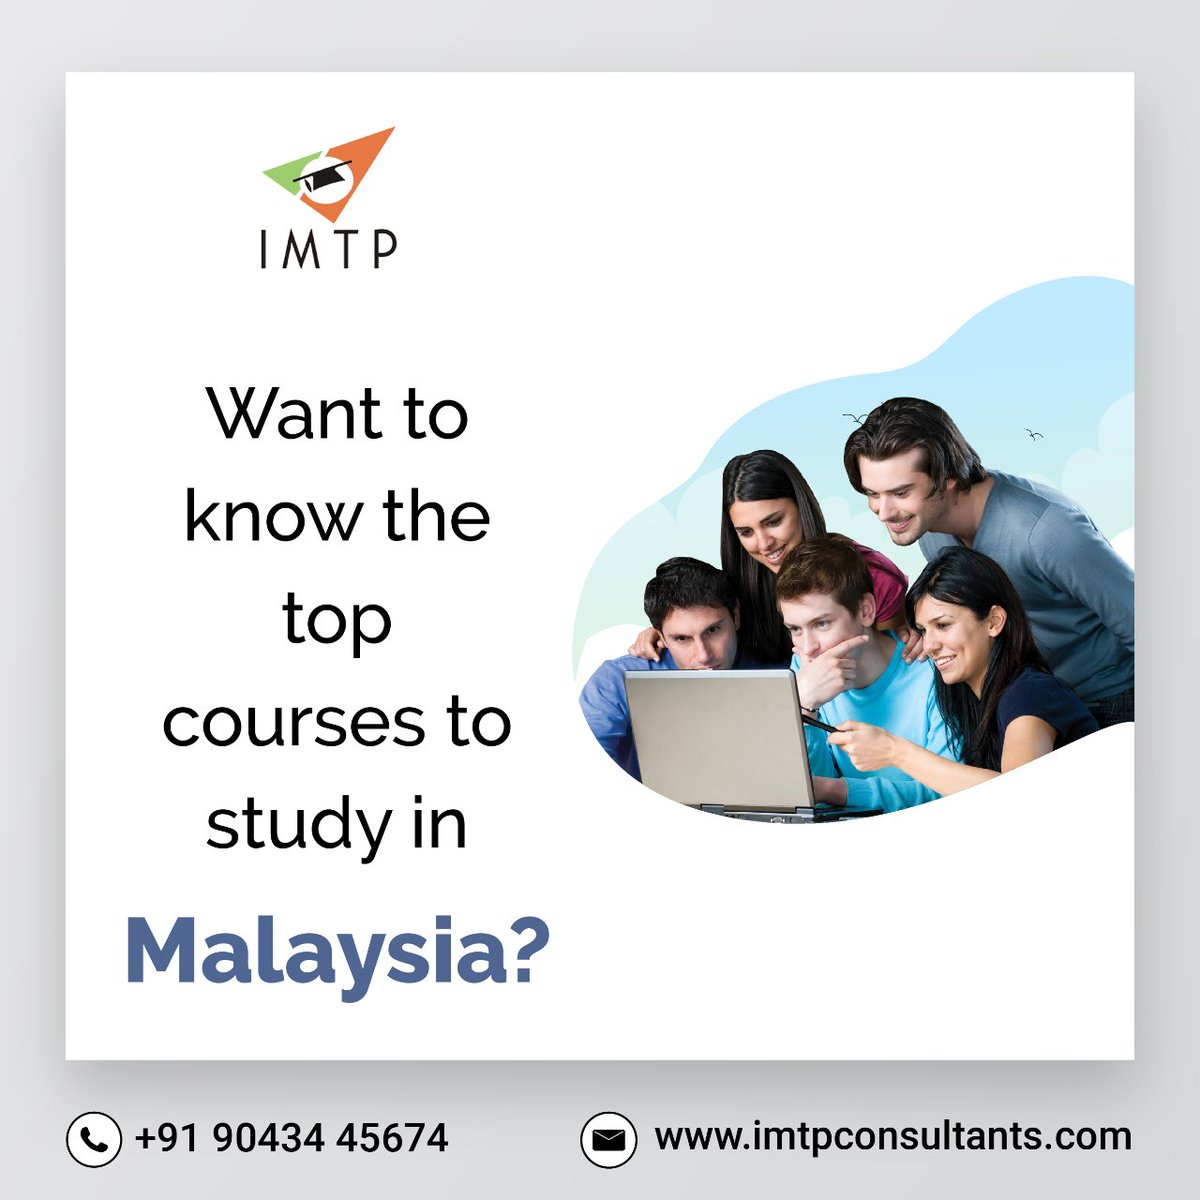 Study in Malaysia Here is your opportunity to study in One of the Largest Private Medical Universities in Malaysia. • Medicine • Biomedical Science ,Low Cost of Living .  #imtpconsultants #StudyinMalaysia #medicine #biomedicals #dentistry #studyabroad #internationaleducationpic.twitter.com/7DGI1ImyJG